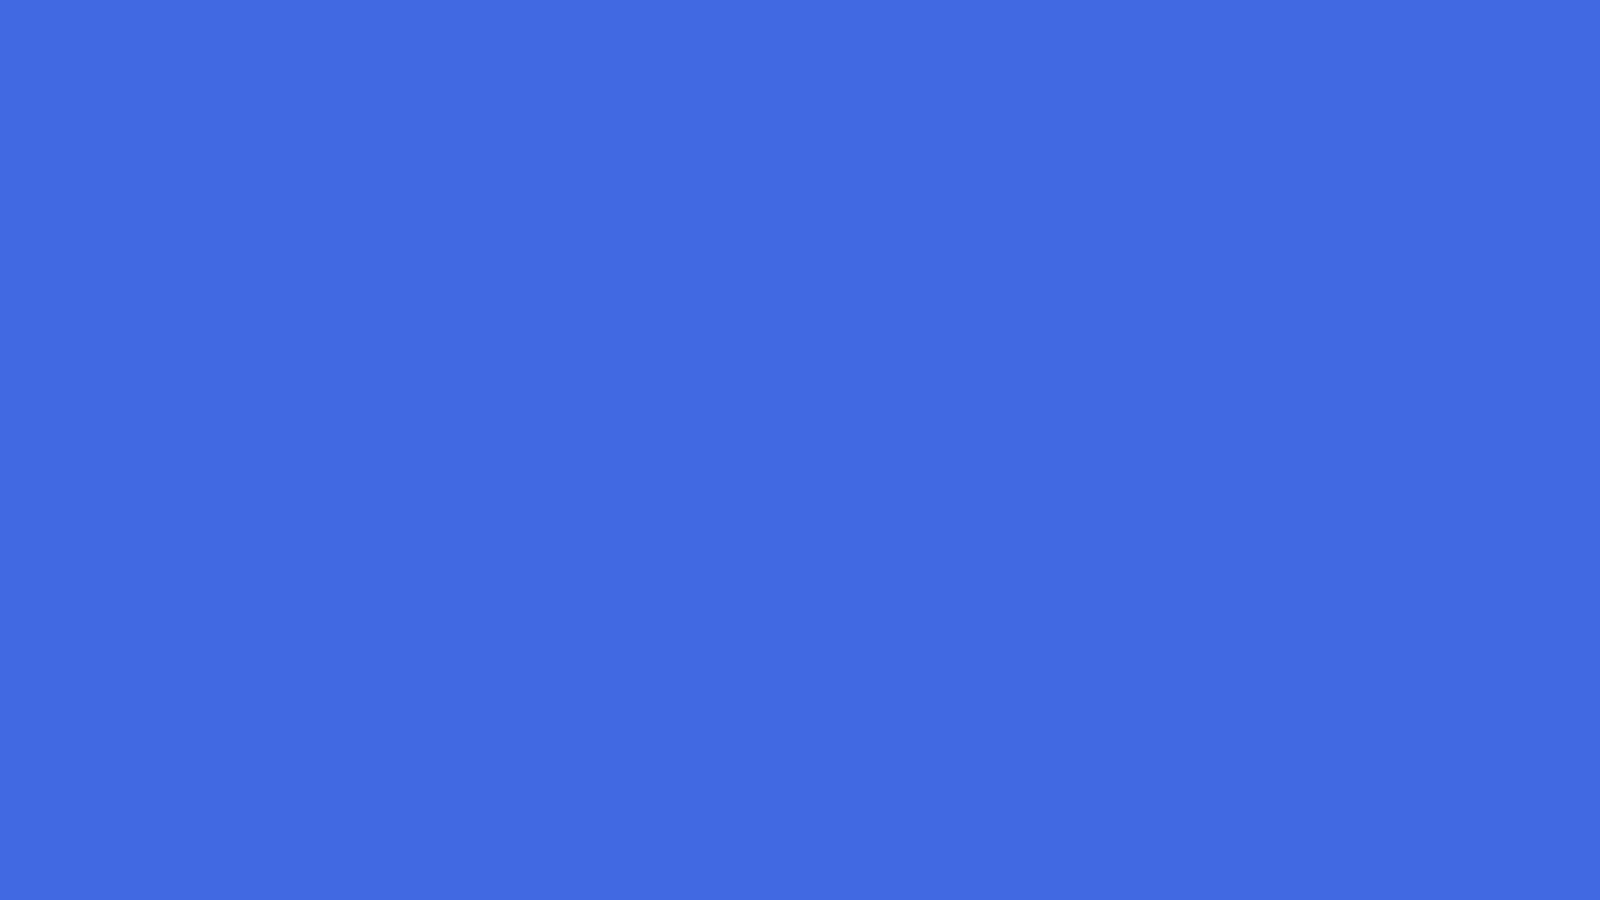 1600x900-royal-blue-web-solid-color-background